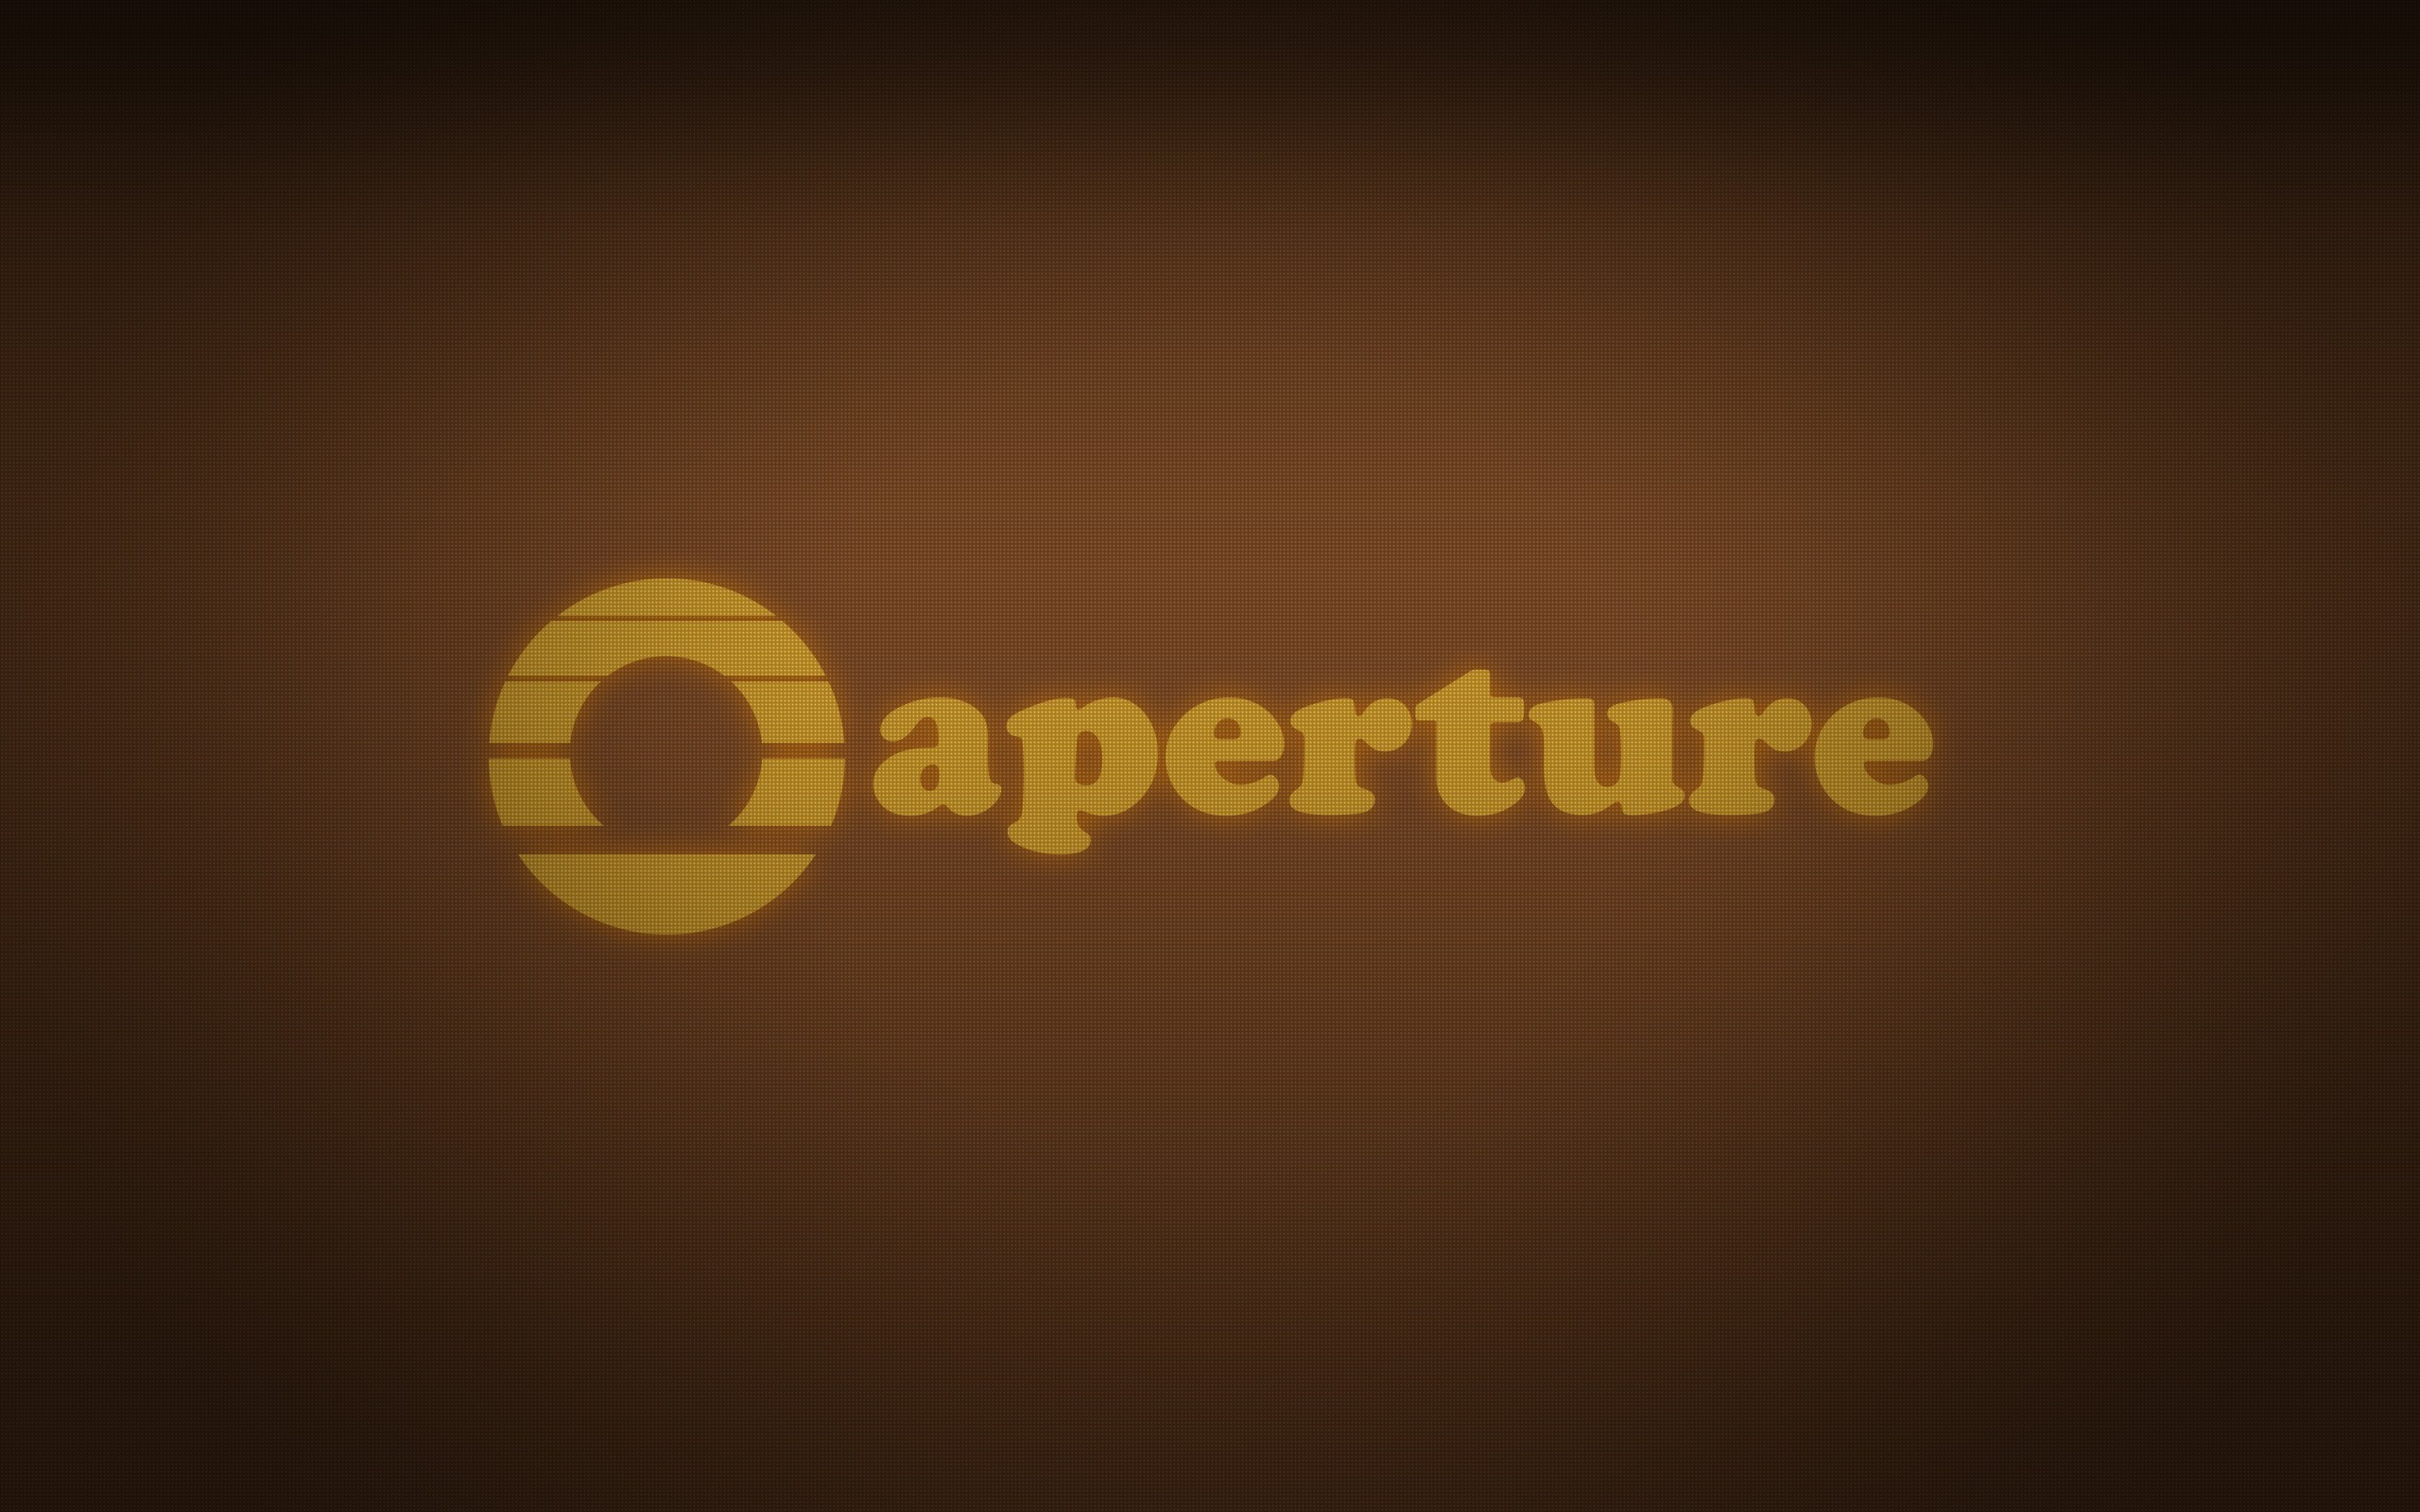 Aperture Science Wallpaper HD (78+ images)